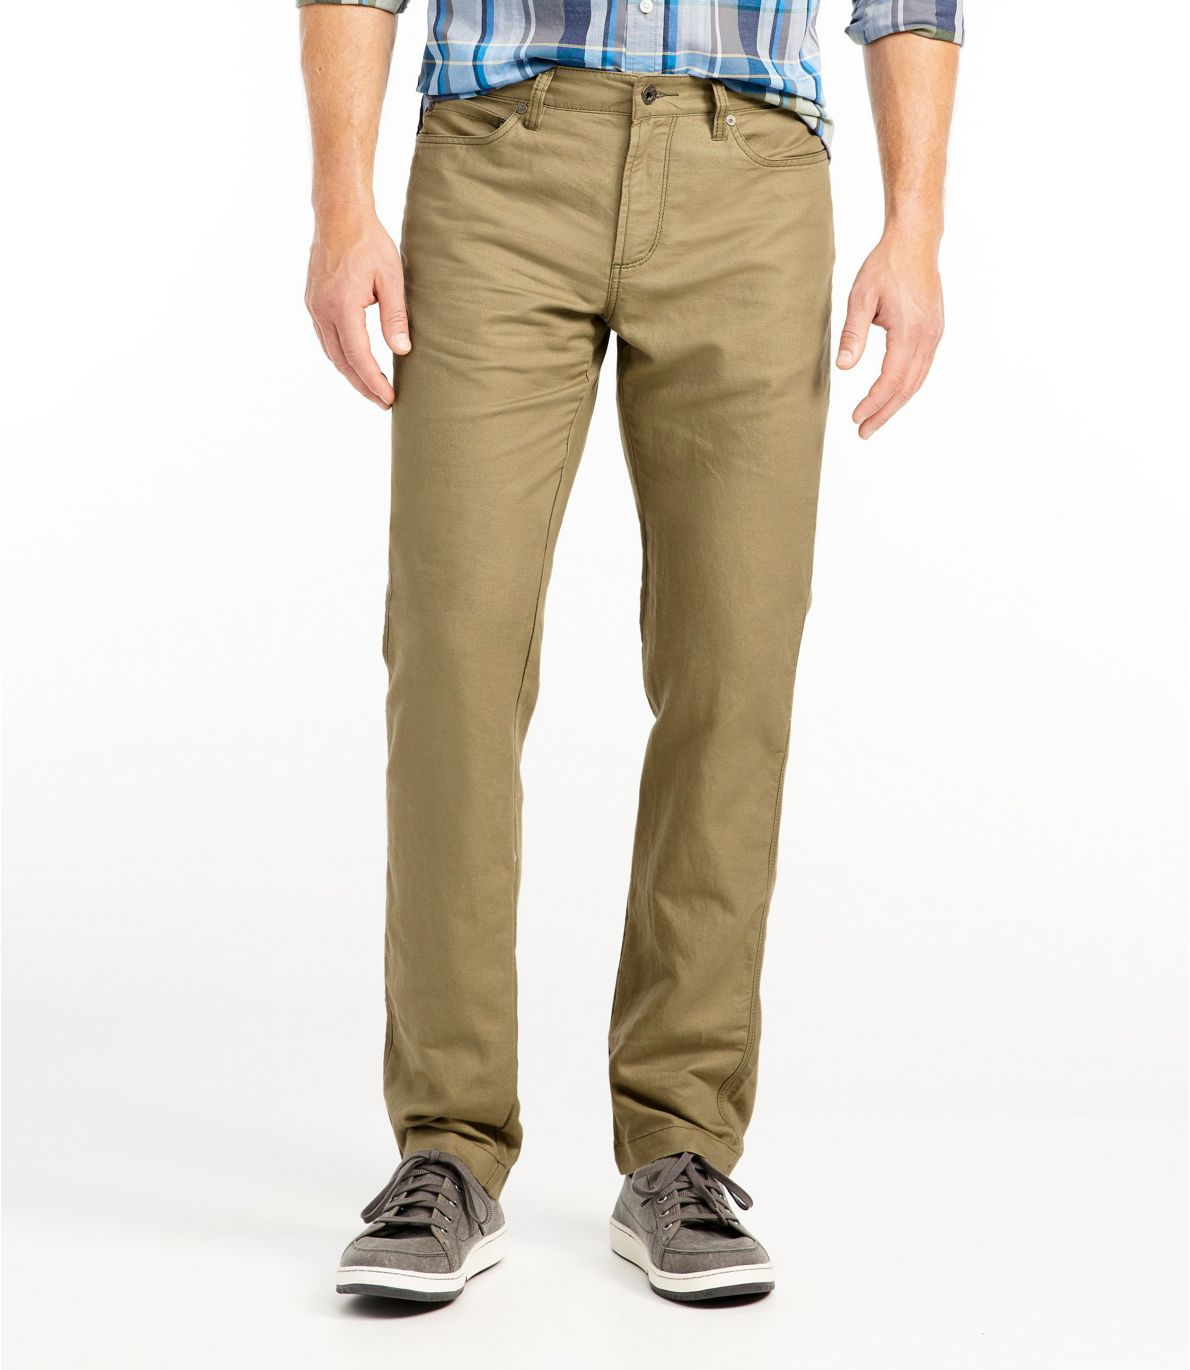 Men's Signature Linen/Cotton Five-Pocket Pants